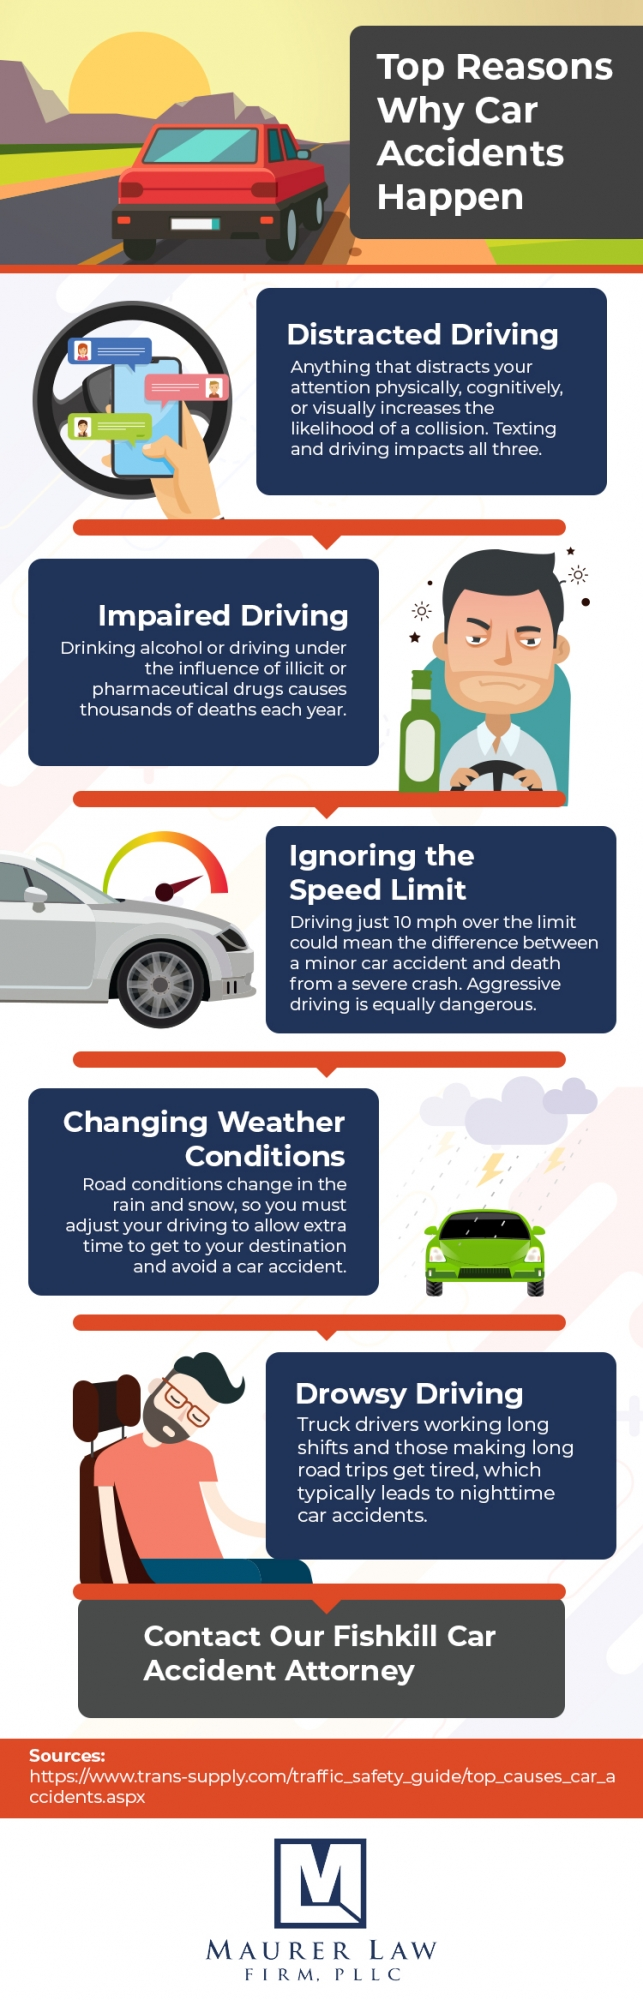 Infographic outlines the reasons behind car accidents in Fishkill and Upstate New York